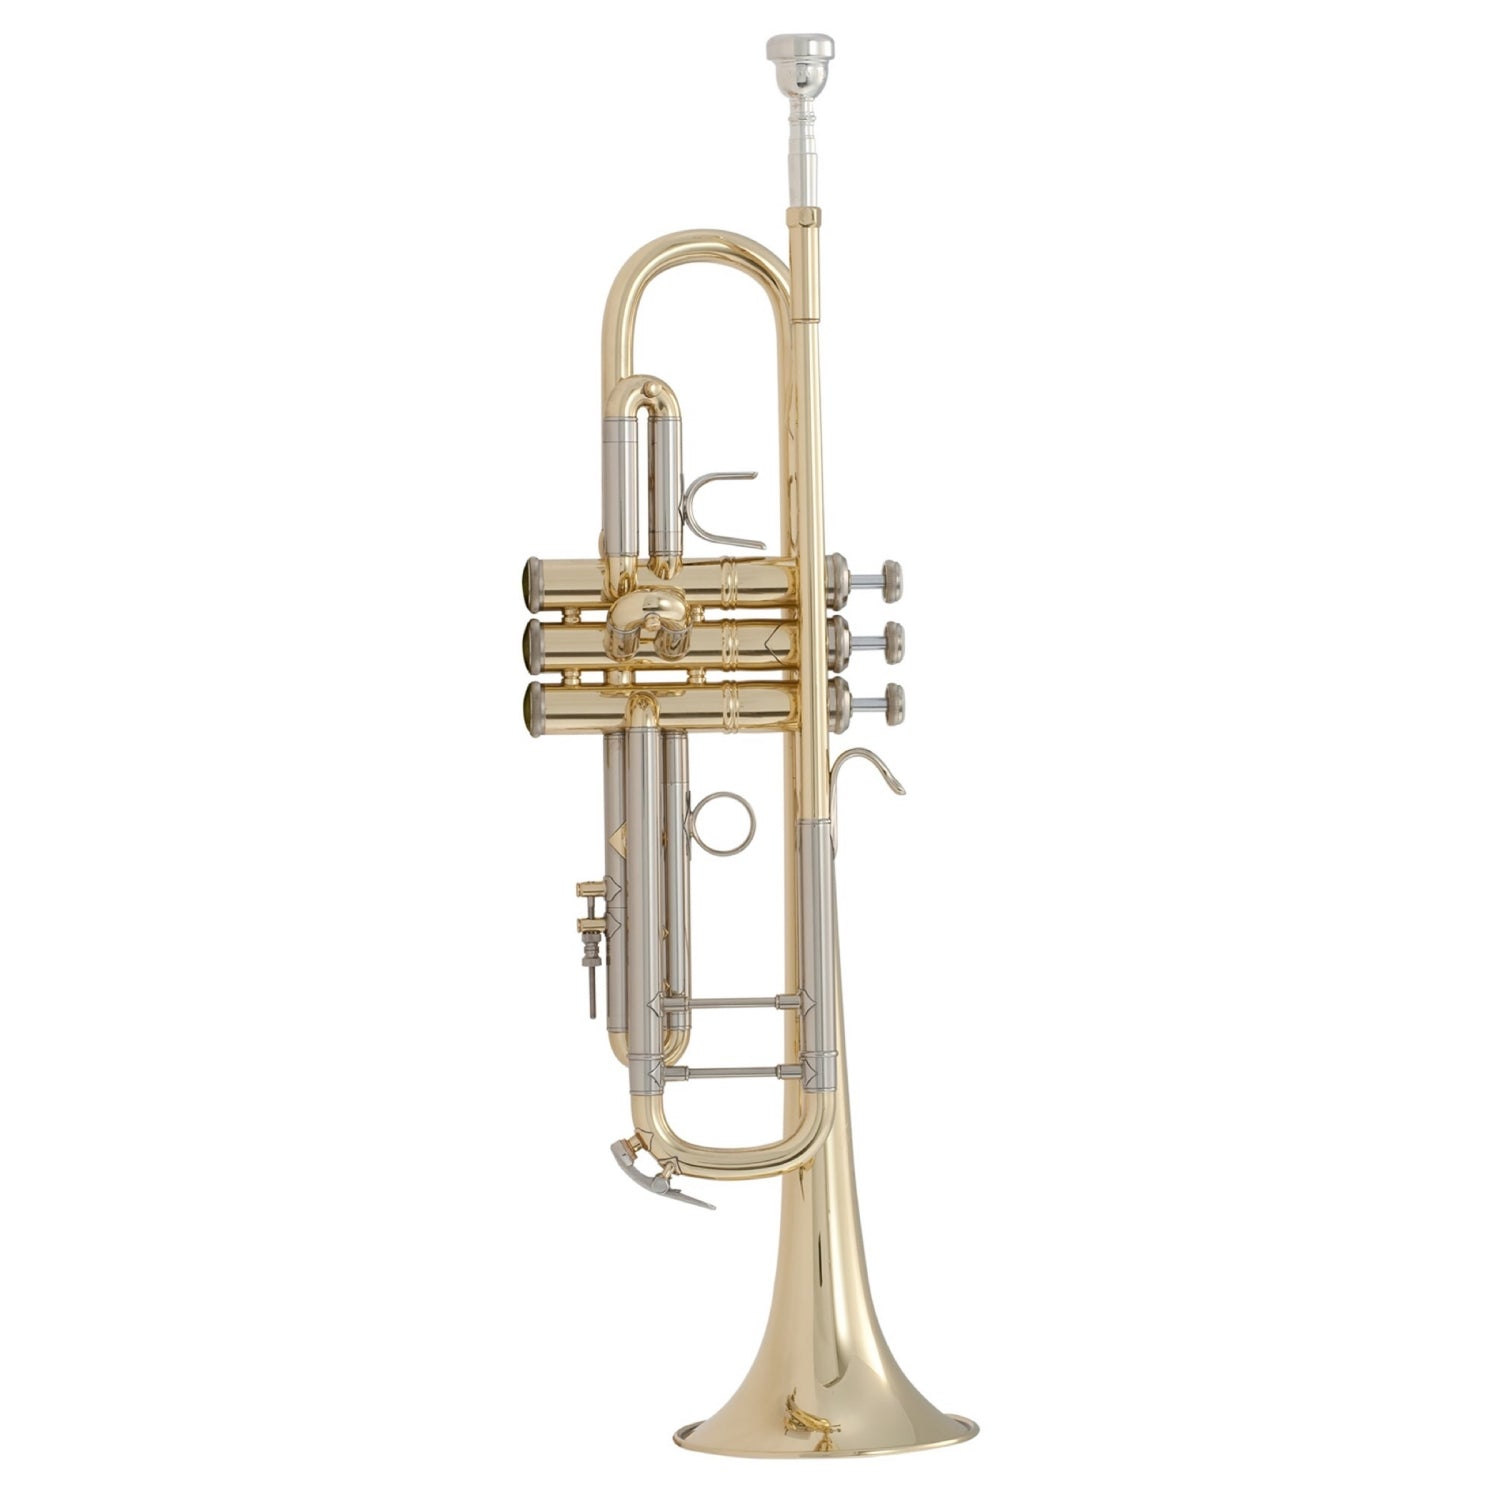 Bach 18043 Stradivarius Professional Bb Trumpet, Lacquer